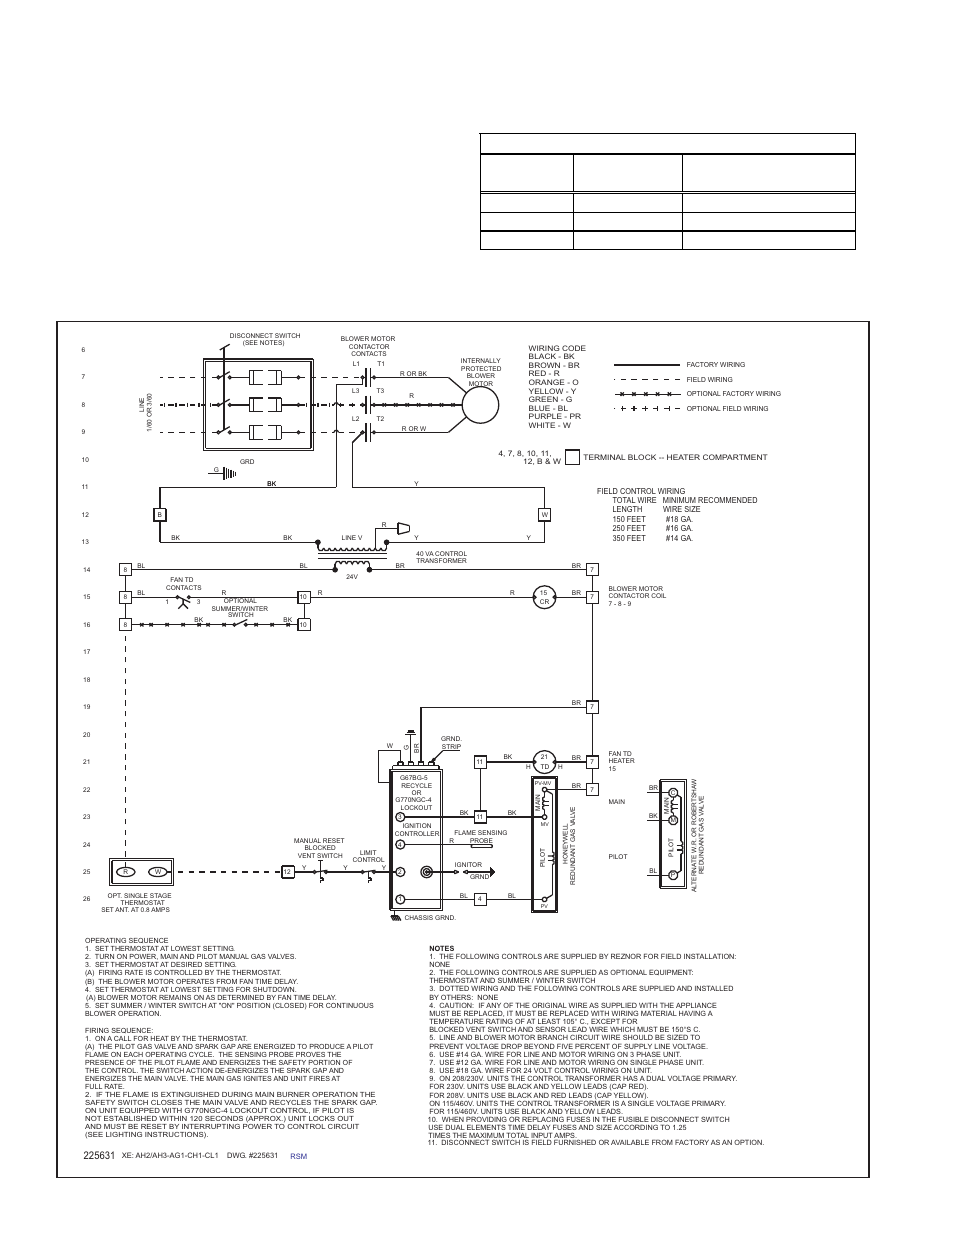 reznor xe unit installation manual page19?resize=665%2C861 reznor heater wiring diagram wiring diagram reznor fe 100 wiring diagram at reclaimingppi.co